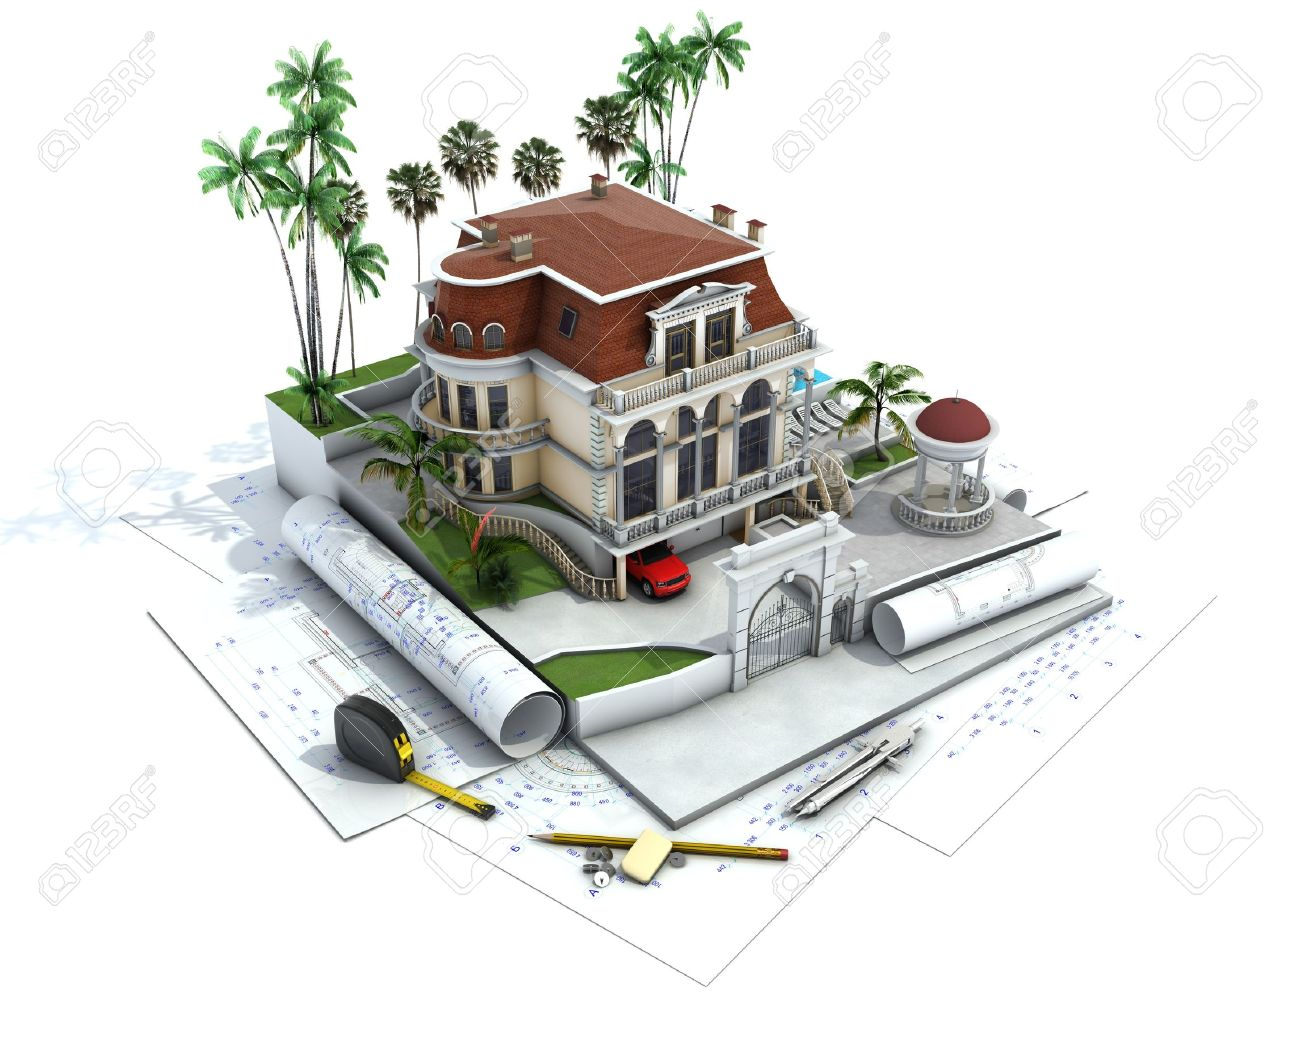 House Architecture Drawing at GetDrawings.com   Free for personal ...